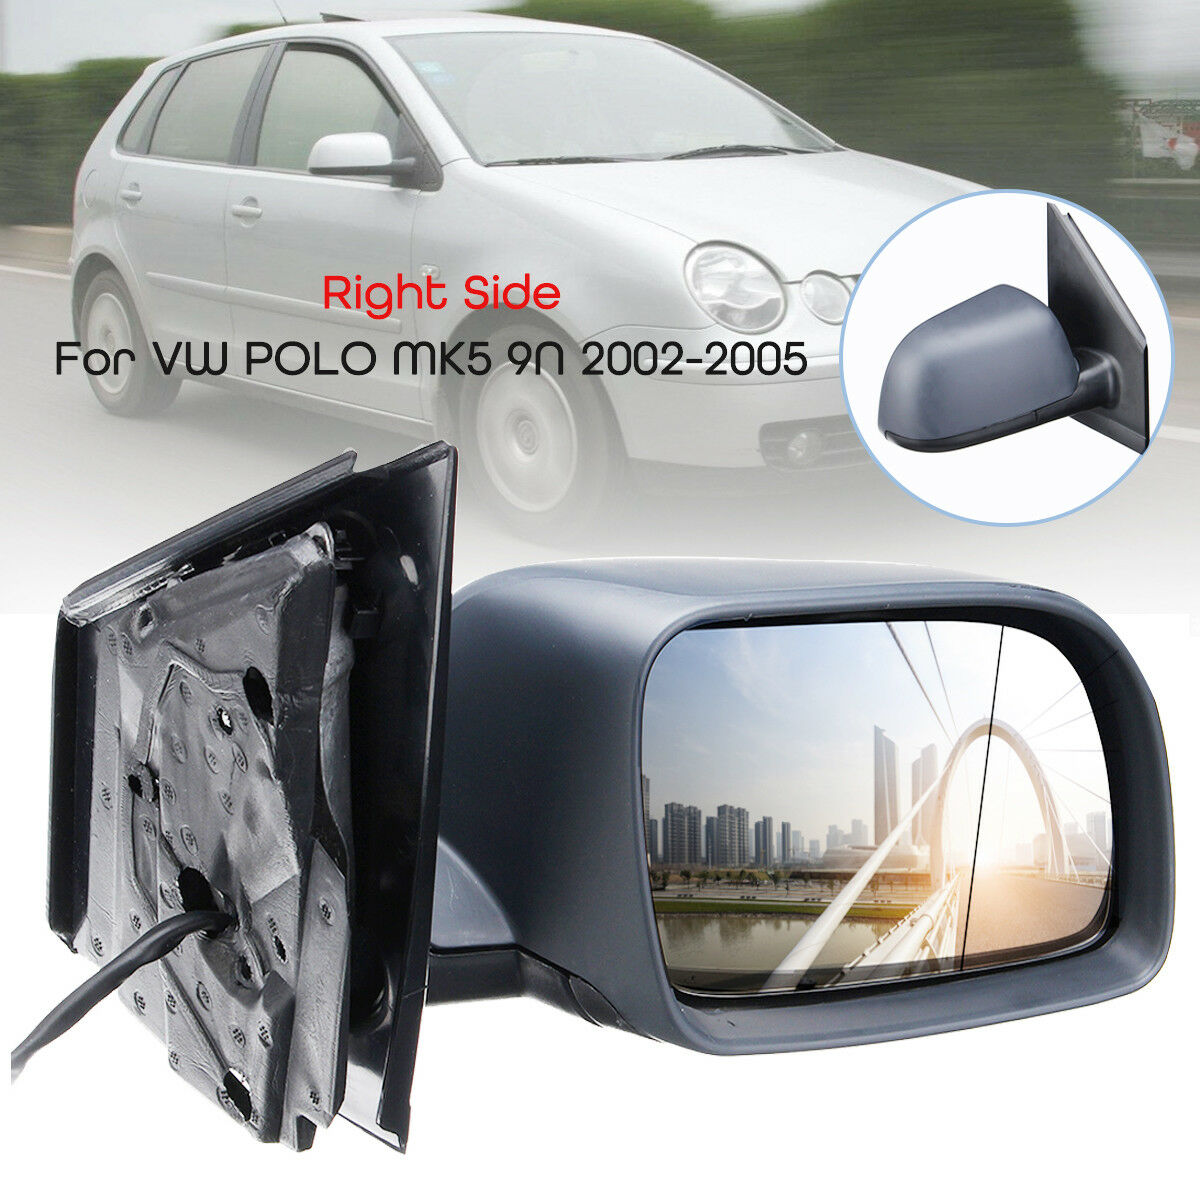 Car Heated Electric Door Wing Mirror Glass Left Side For VW POLO MK5 9N 02-05